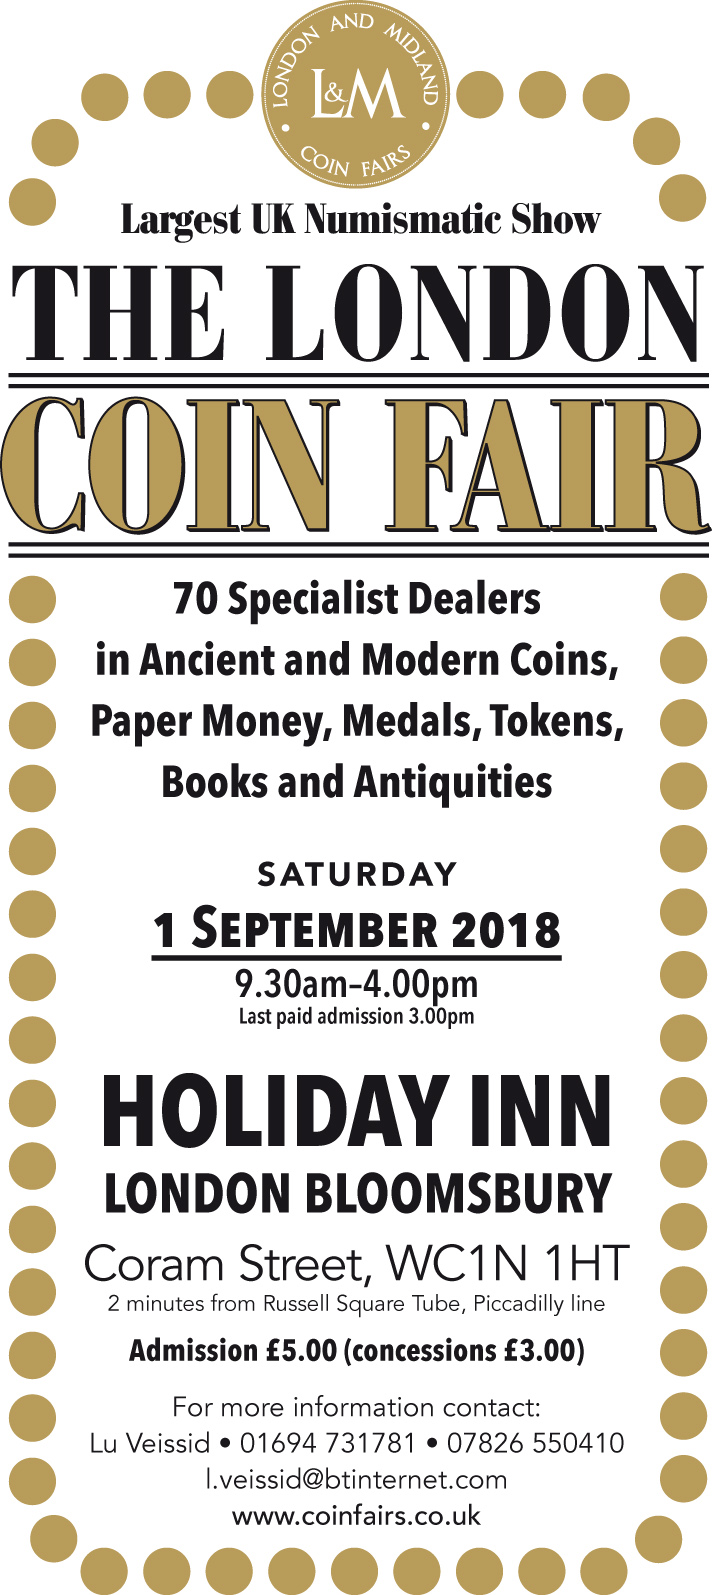 London Coin Fair information